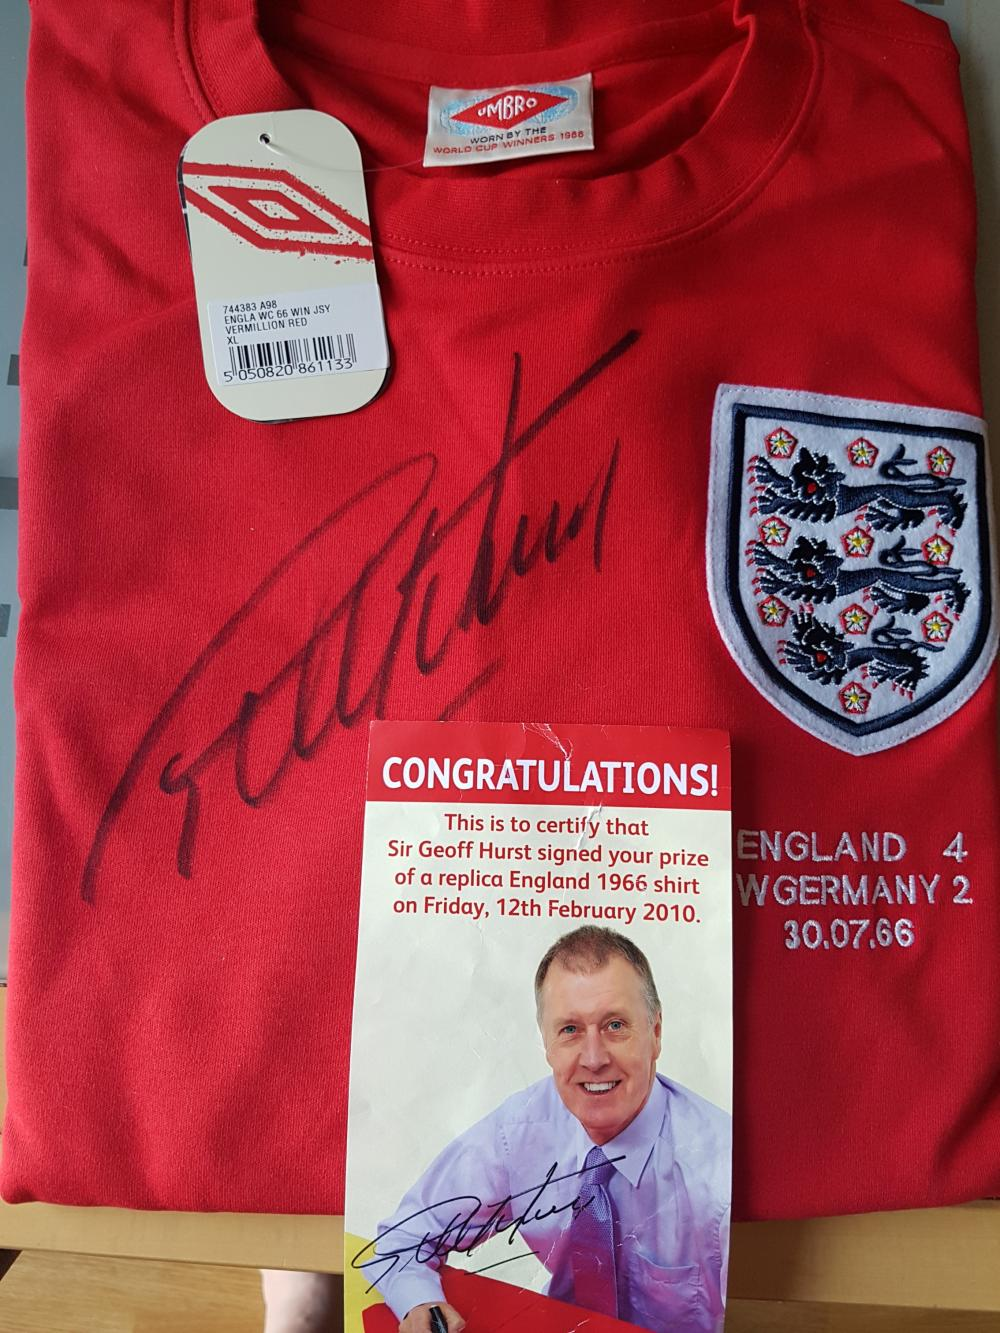 Lot 128: Geoff Hurst Signed England Shirt - Sir Geoffrey Charles Hurst MBE (born 8 December 1941)[1] is a former England international footballer. A striker, he remains the only man to score a hat-trick in a World Cup final as England recorded a 4?2